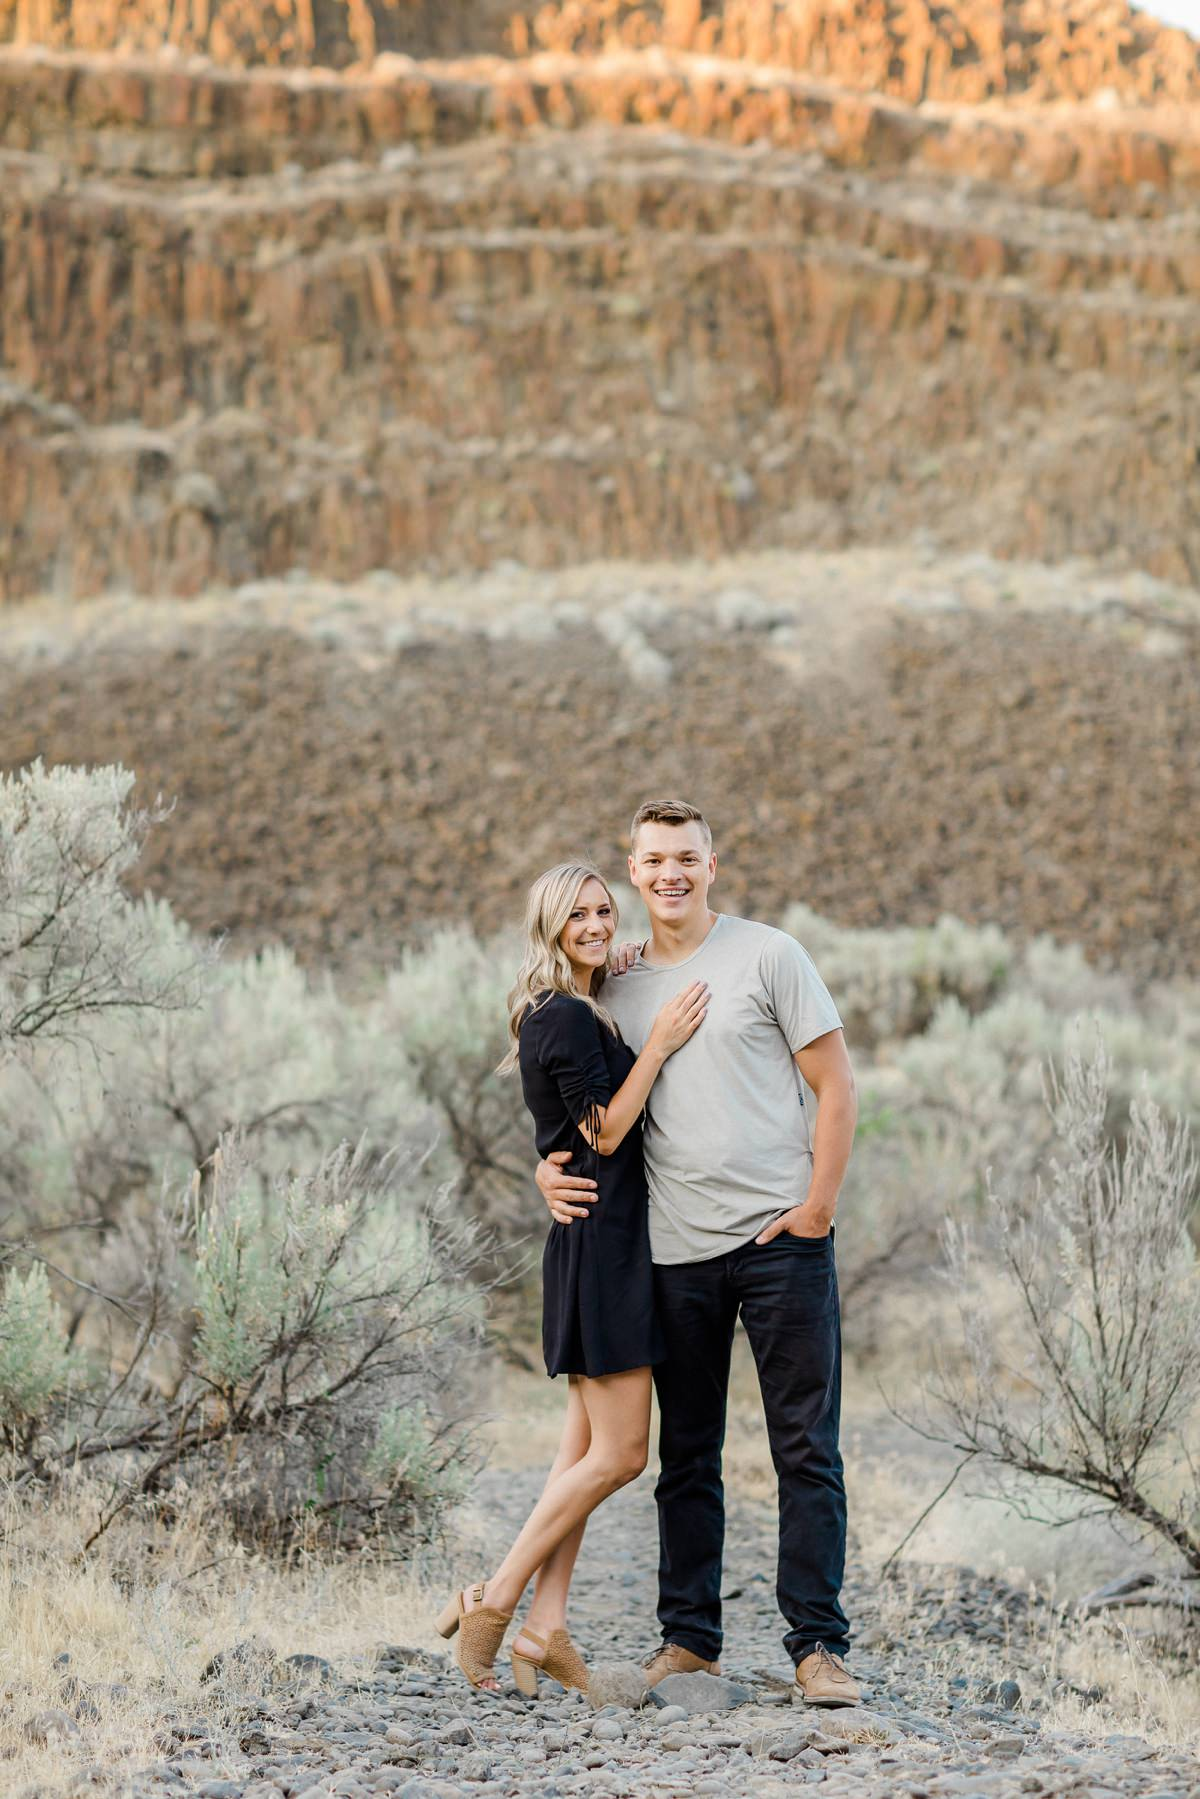 Spokane wedding photographer Oxana Brik